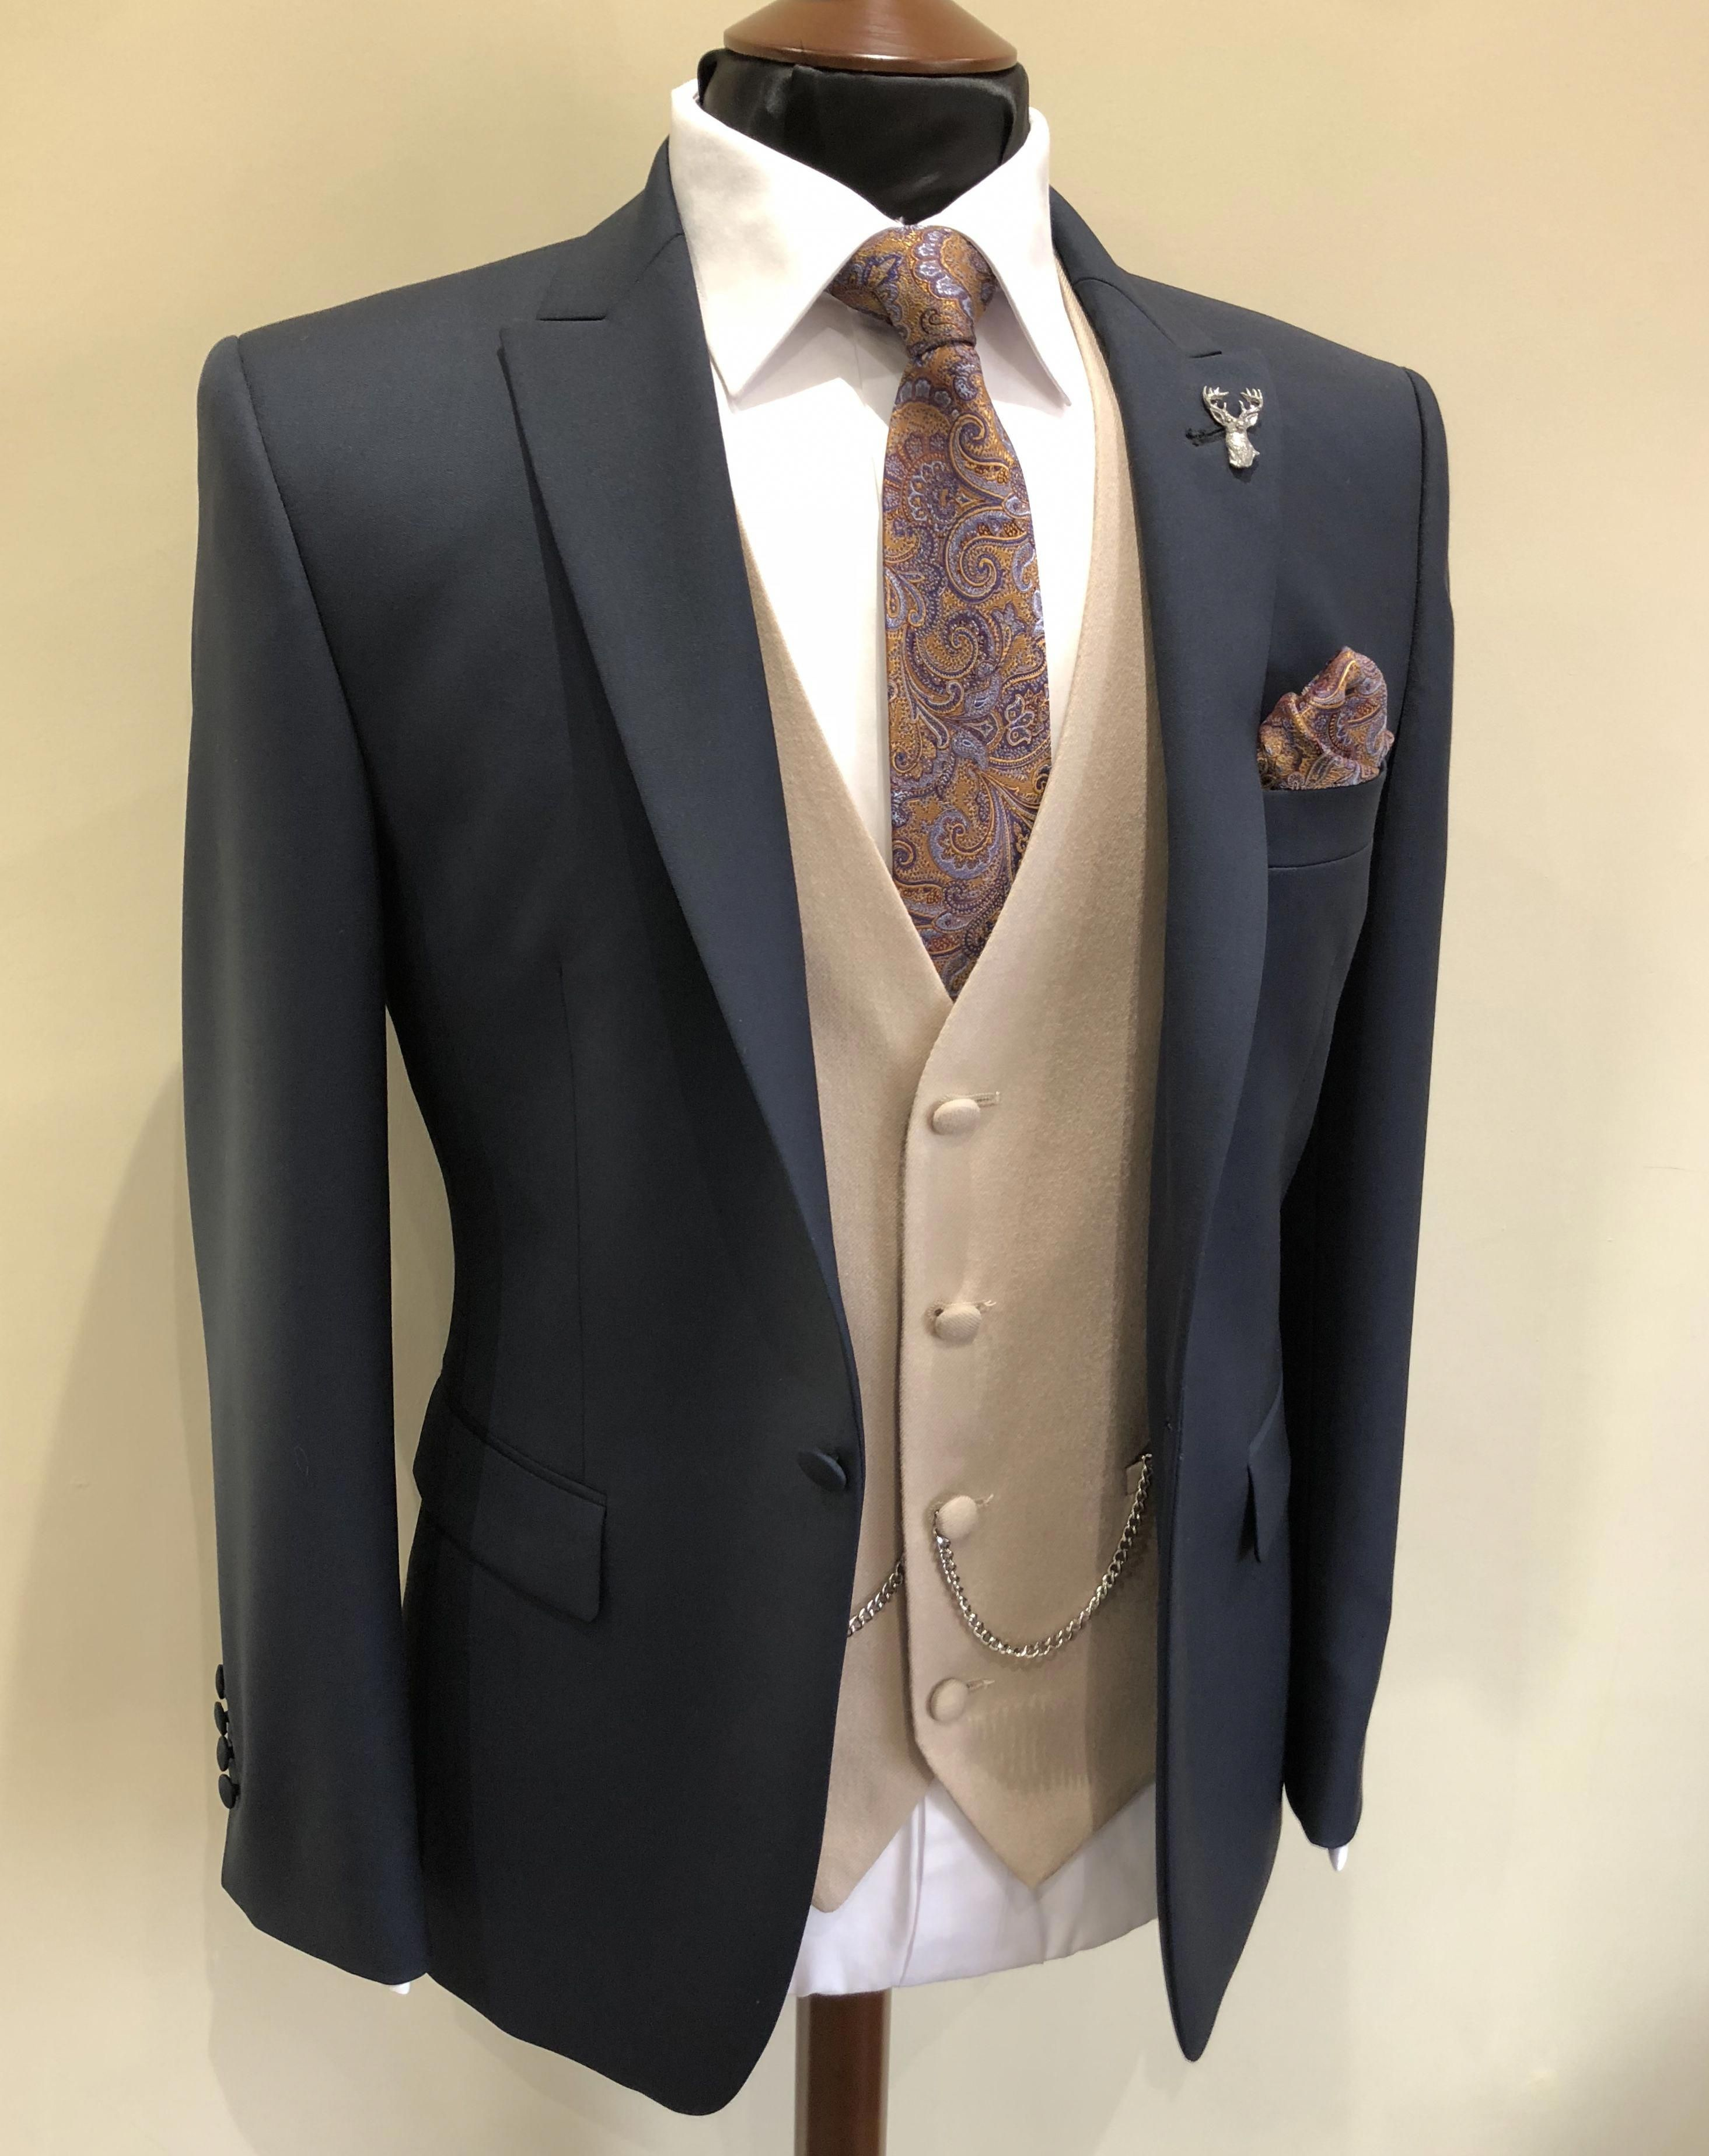 Please Click Here To Get More Information About Mens Fashion Mensfashion Wedding Suit Hire Wedding Suits Suit Fashion